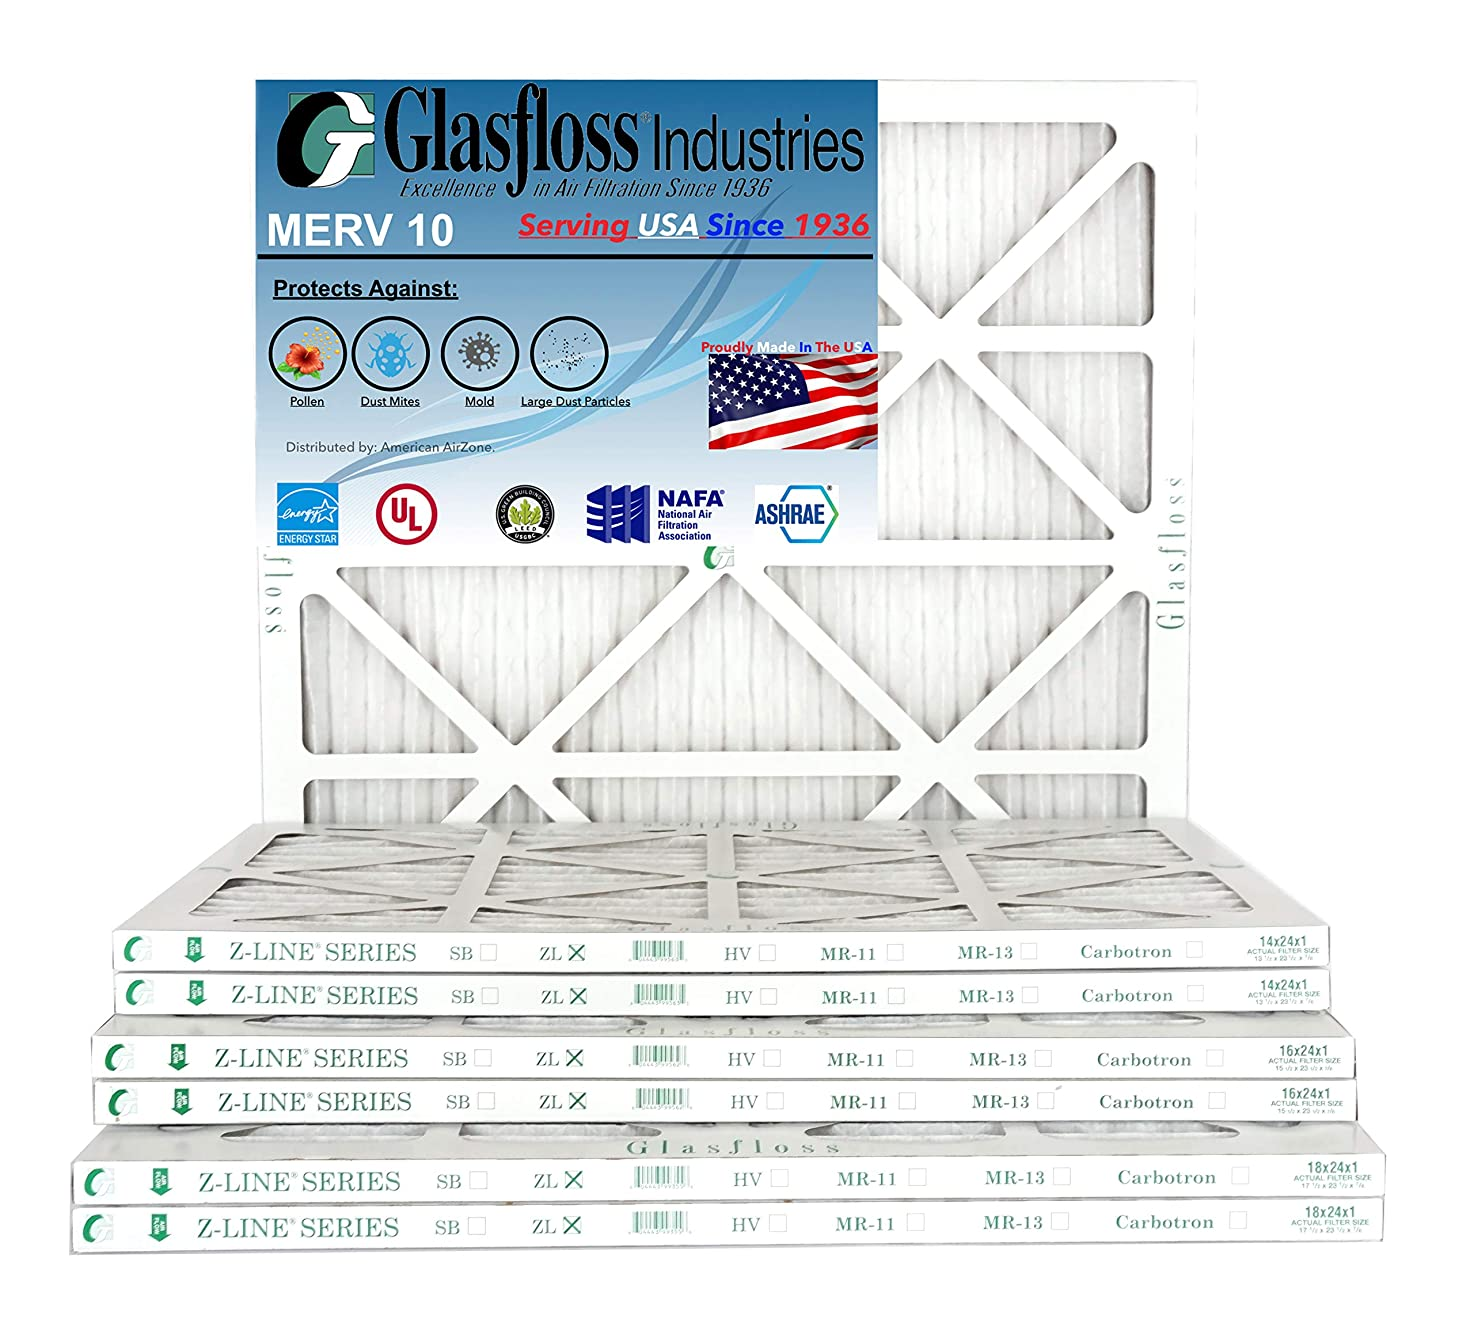 Glasfloss 14x24x1, 1 Inch MERV 10 Pleated AC Furnace Filter- (Pack of 12)- Proudly Made In The USA. yndfkfaiqqqyp7